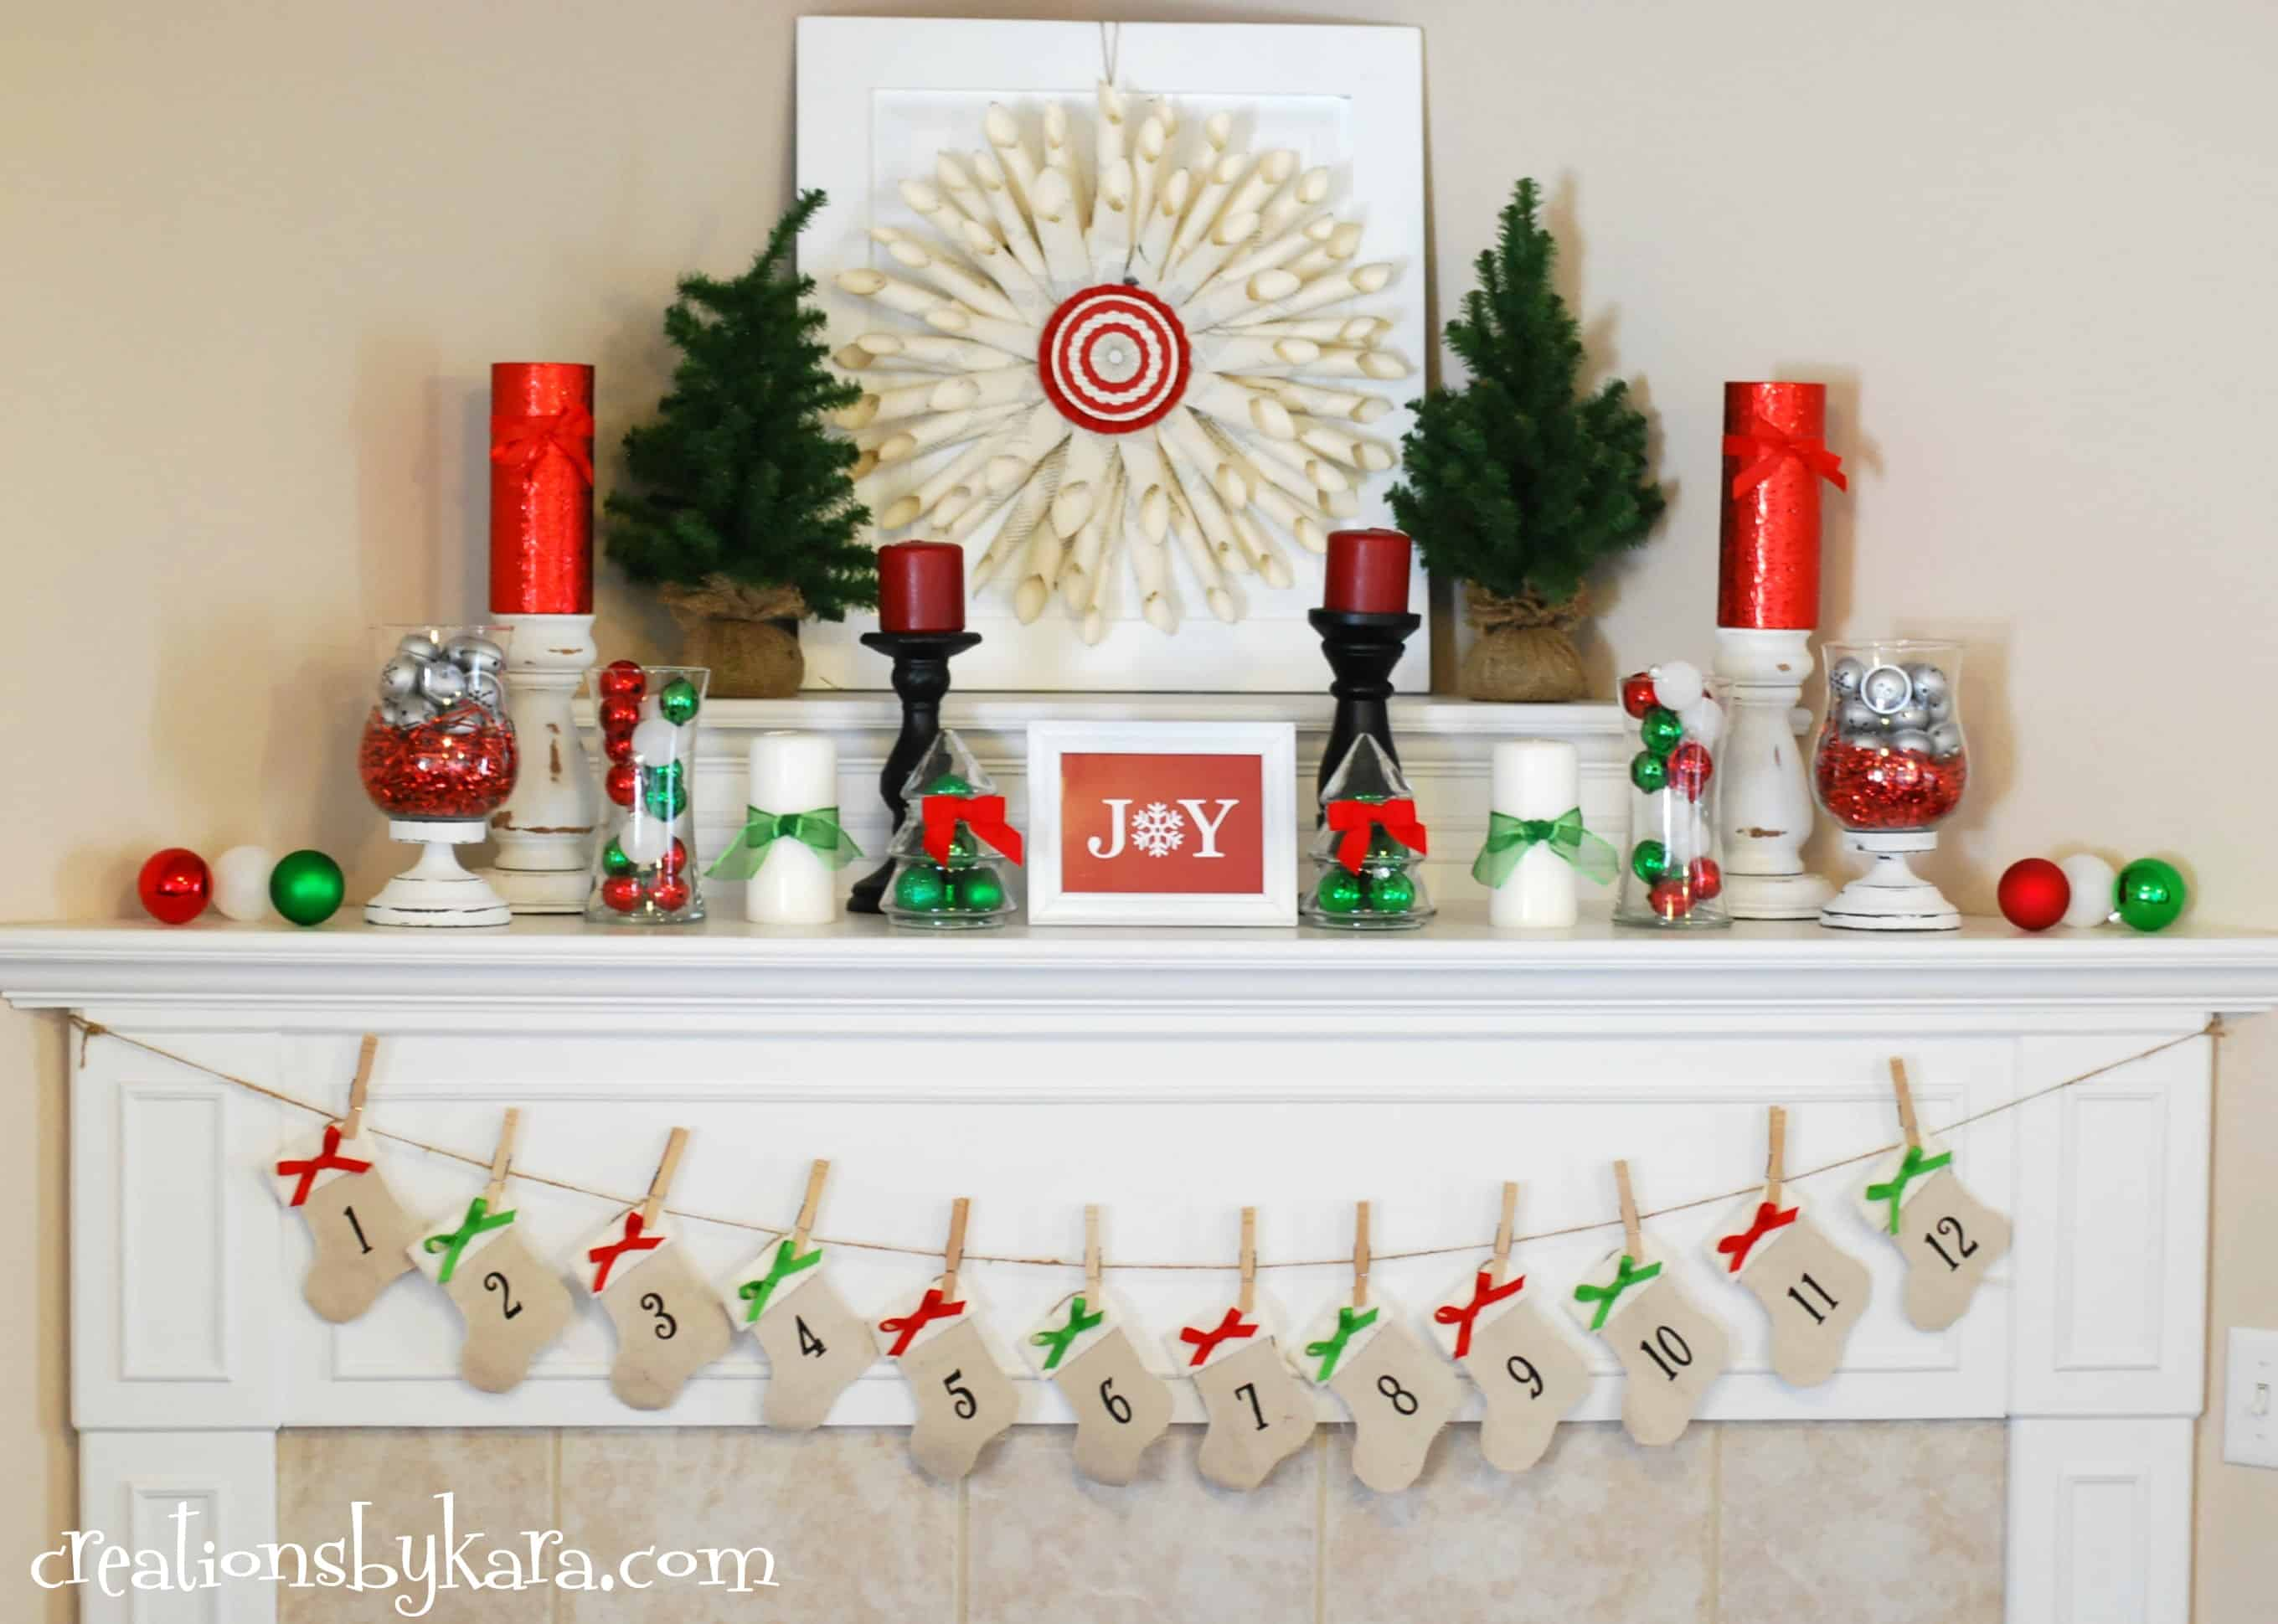 Pinterest holiday ideas holiday decorations gifts and - Como decorar una chimenea ...